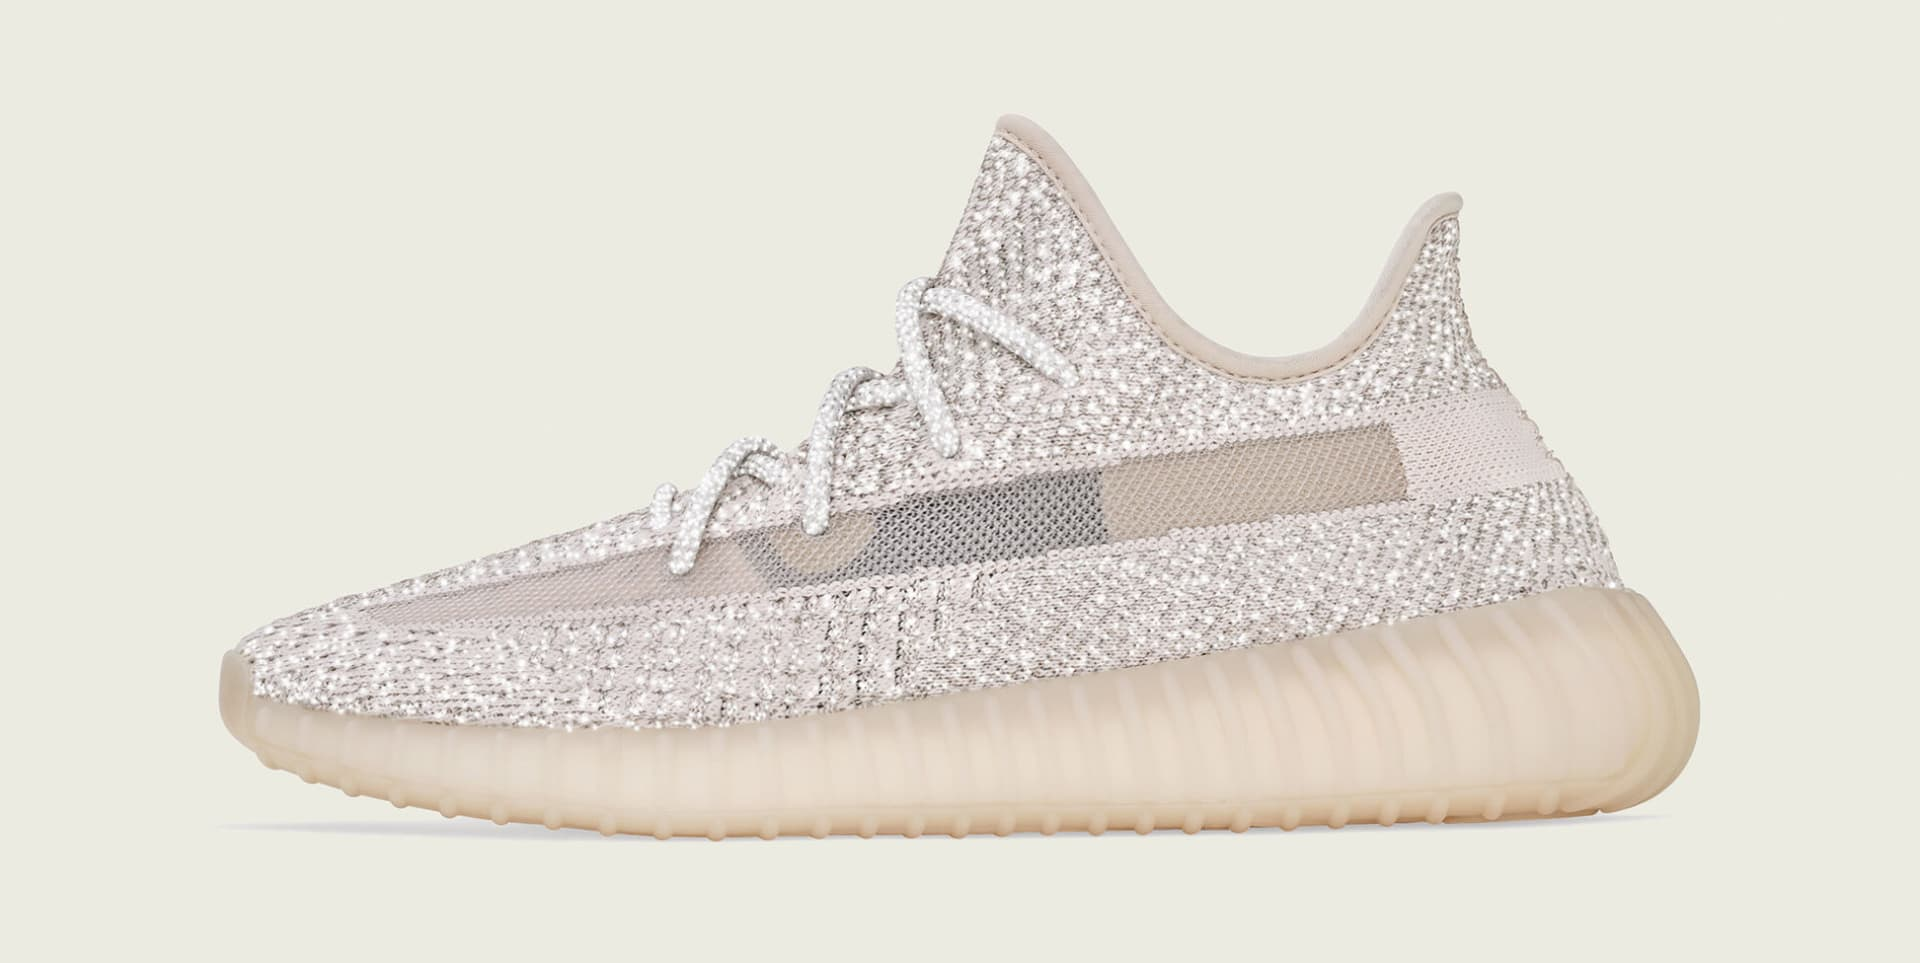 best website b18c2 d3a82 Adidas Yeezy Boost 350 V2 Synth Reflective